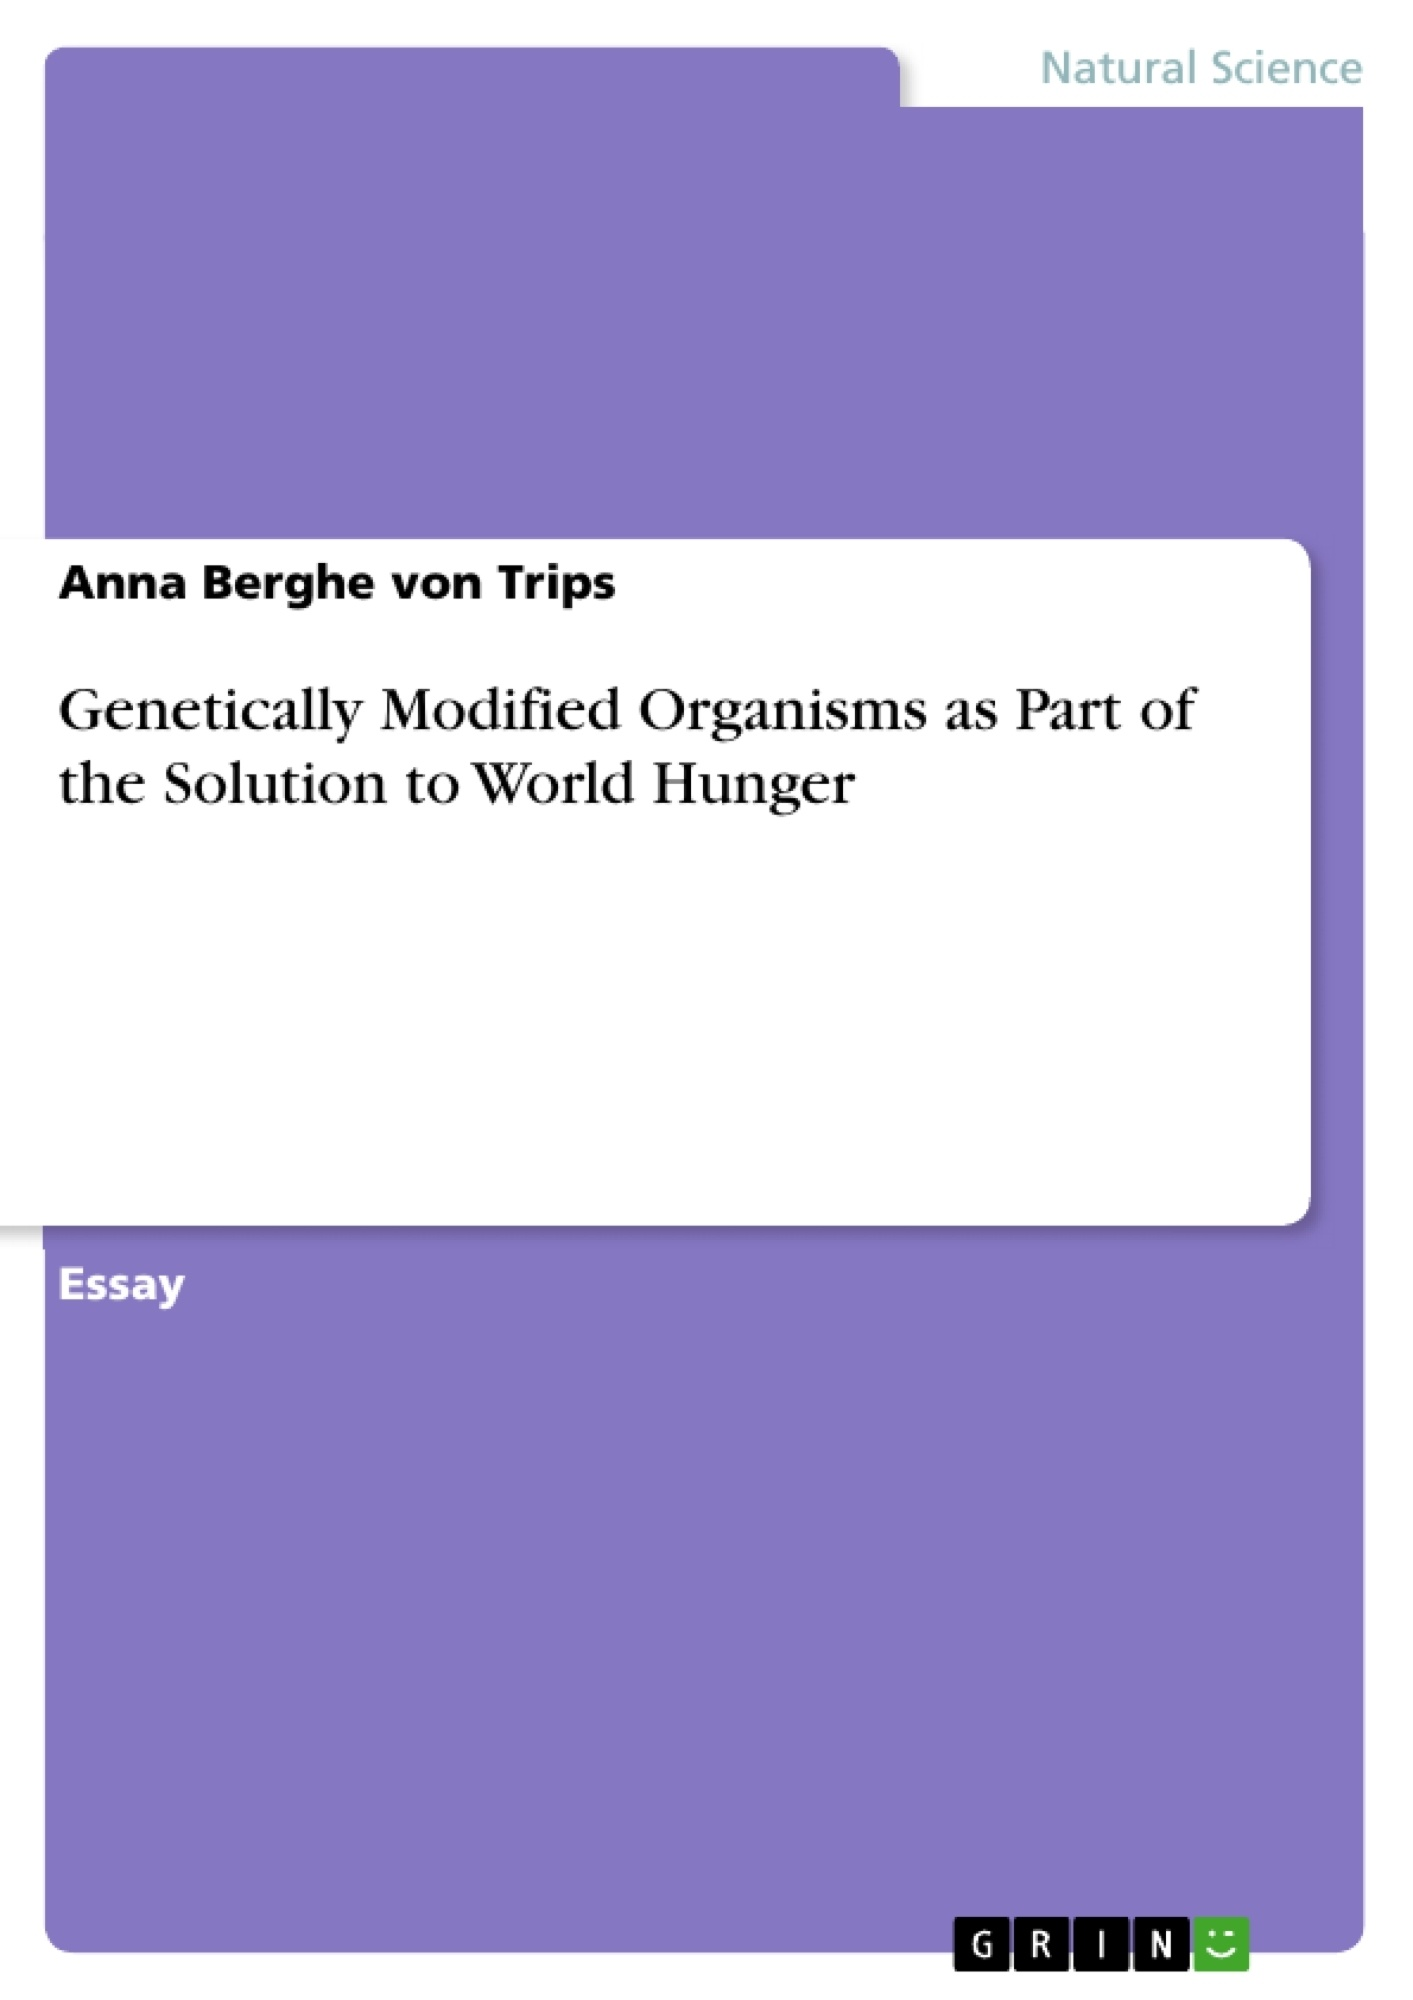 Title: Genetically Modified Organisms as Part of the Solution to World Hunger